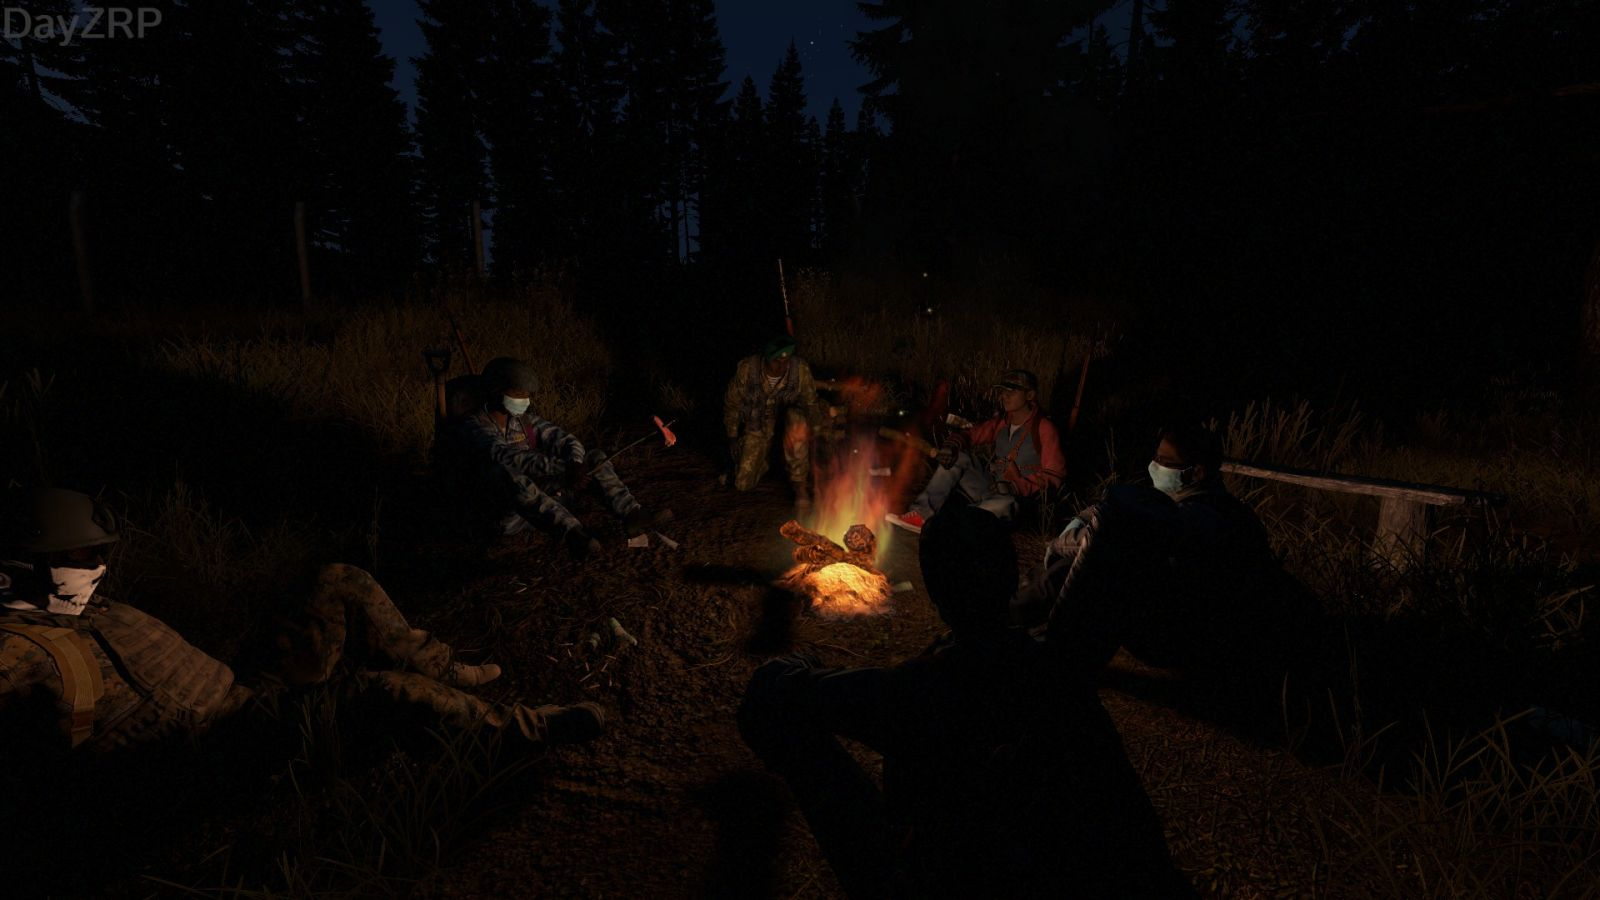 Telling Scary Stories And Horoscopes Dayz Standalone Dayzrp